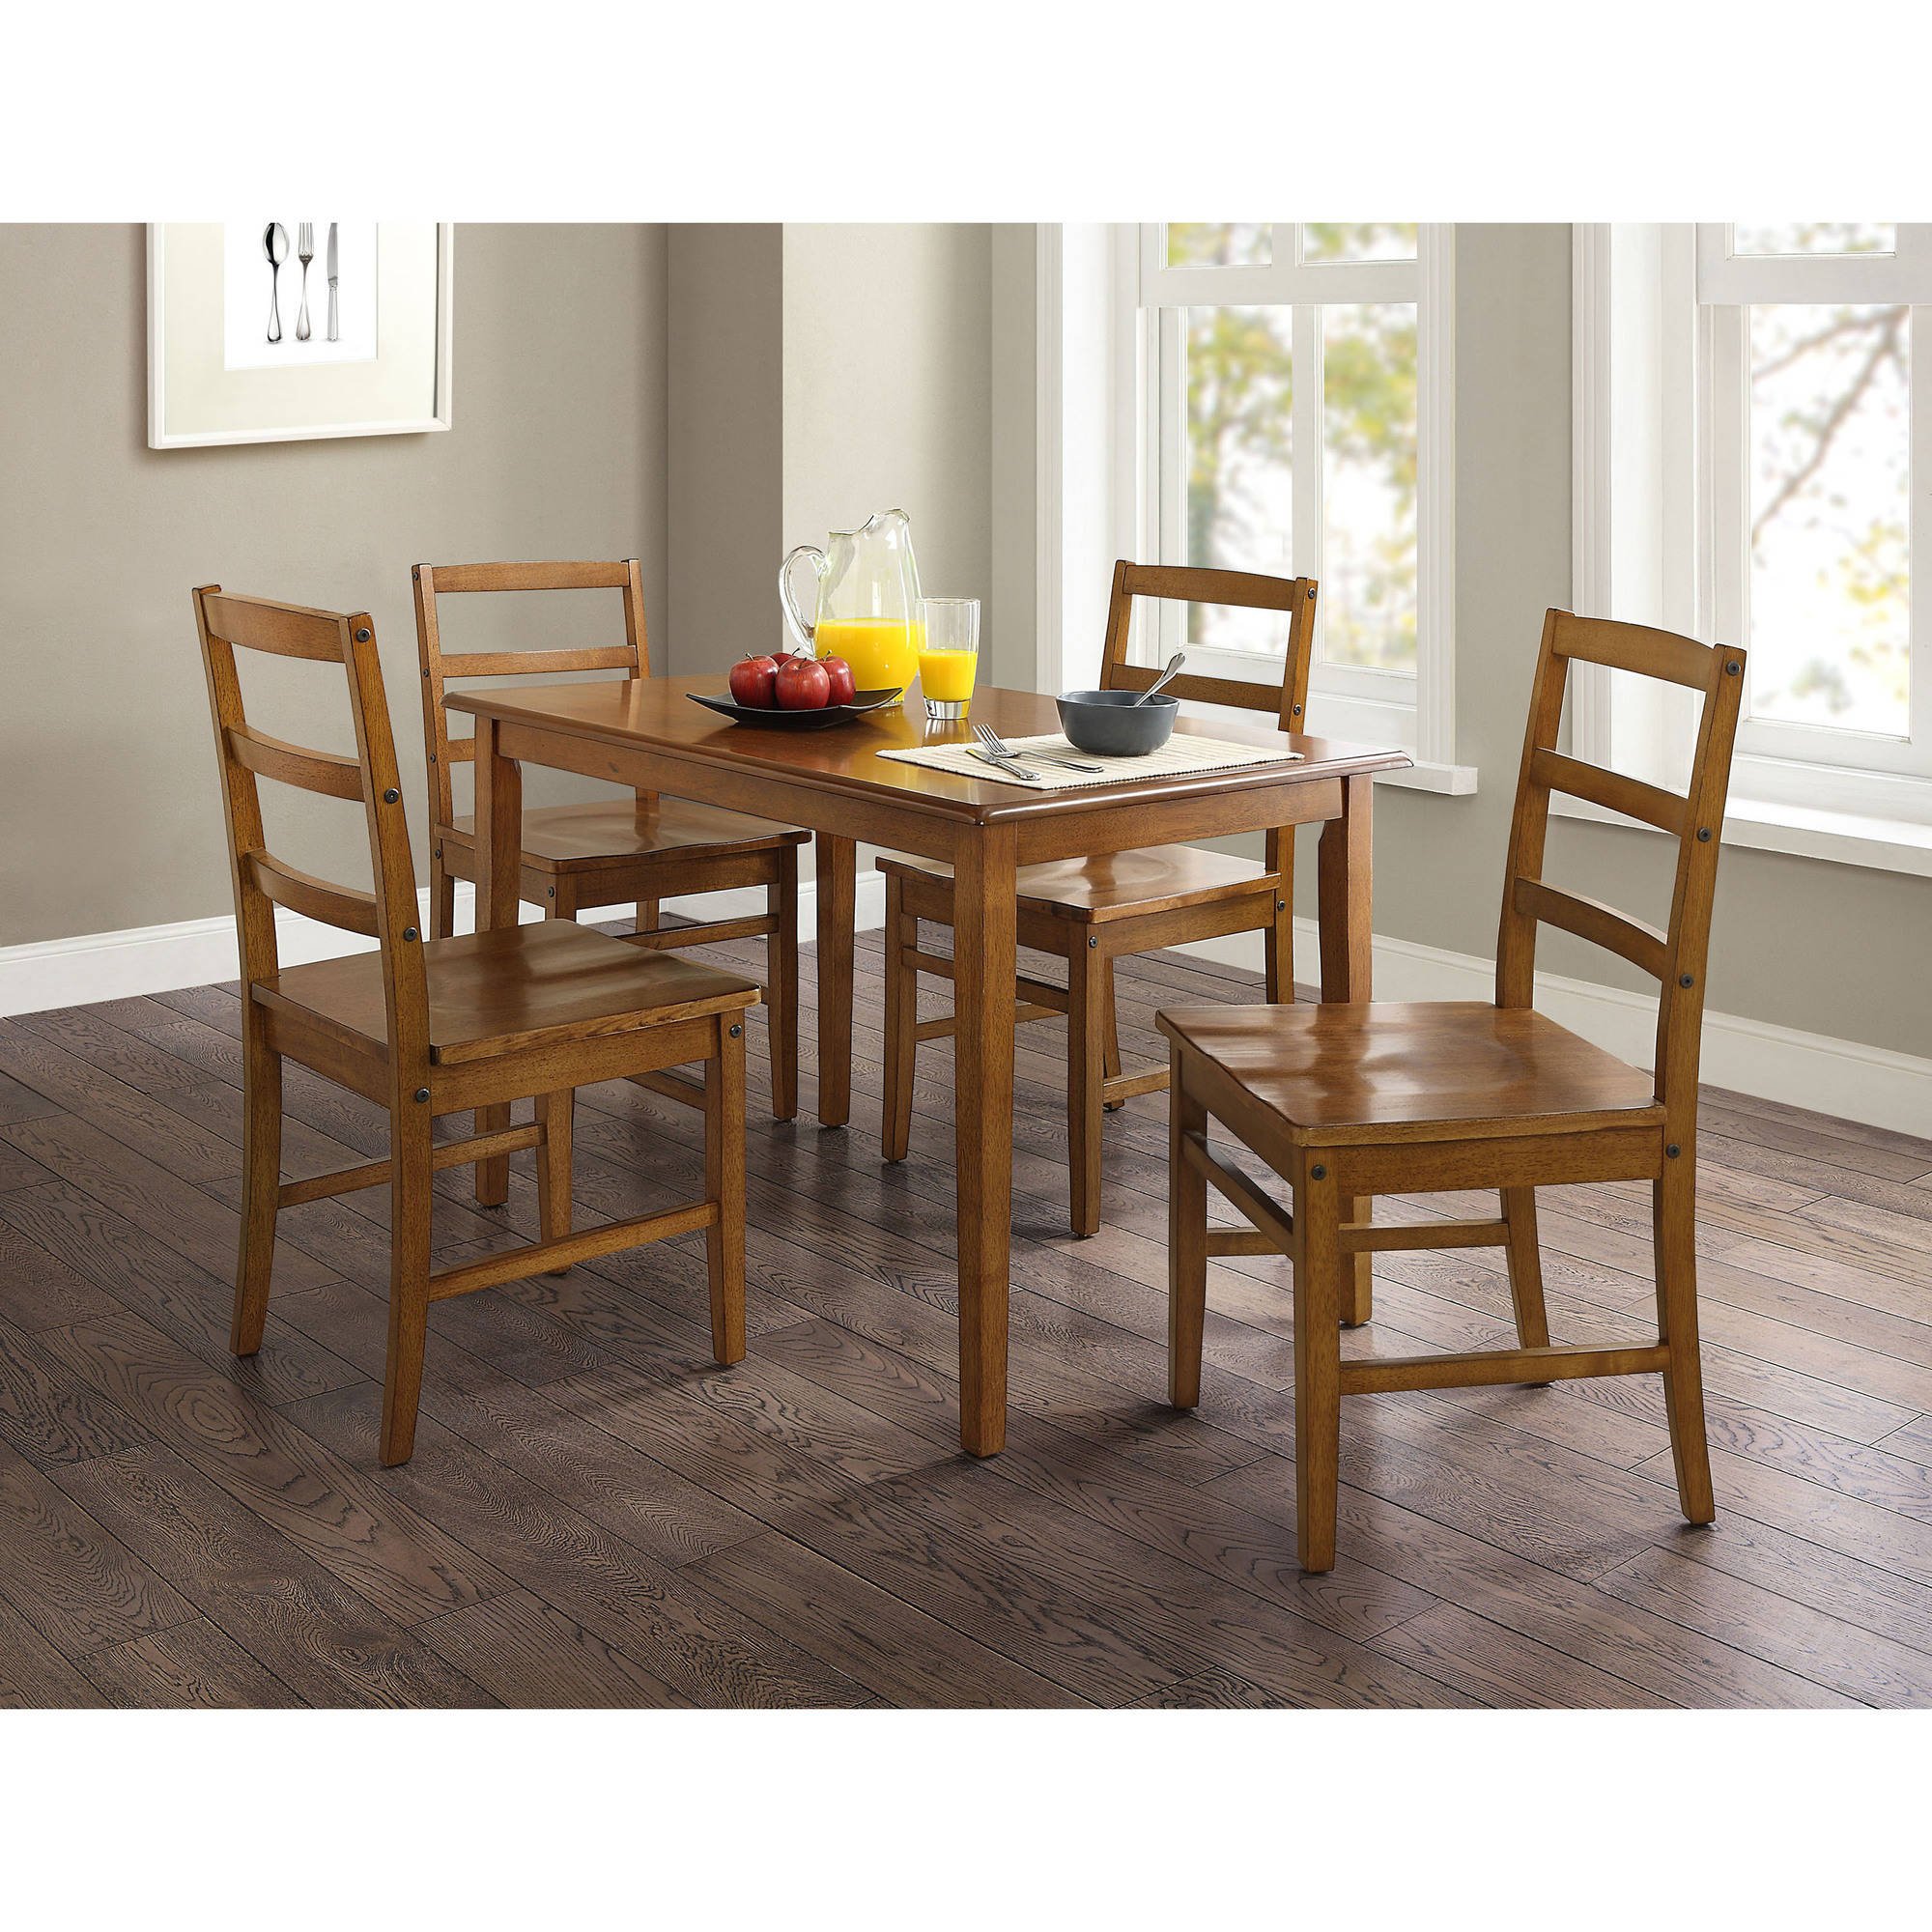 Dining Table Set dining room sets - walmart